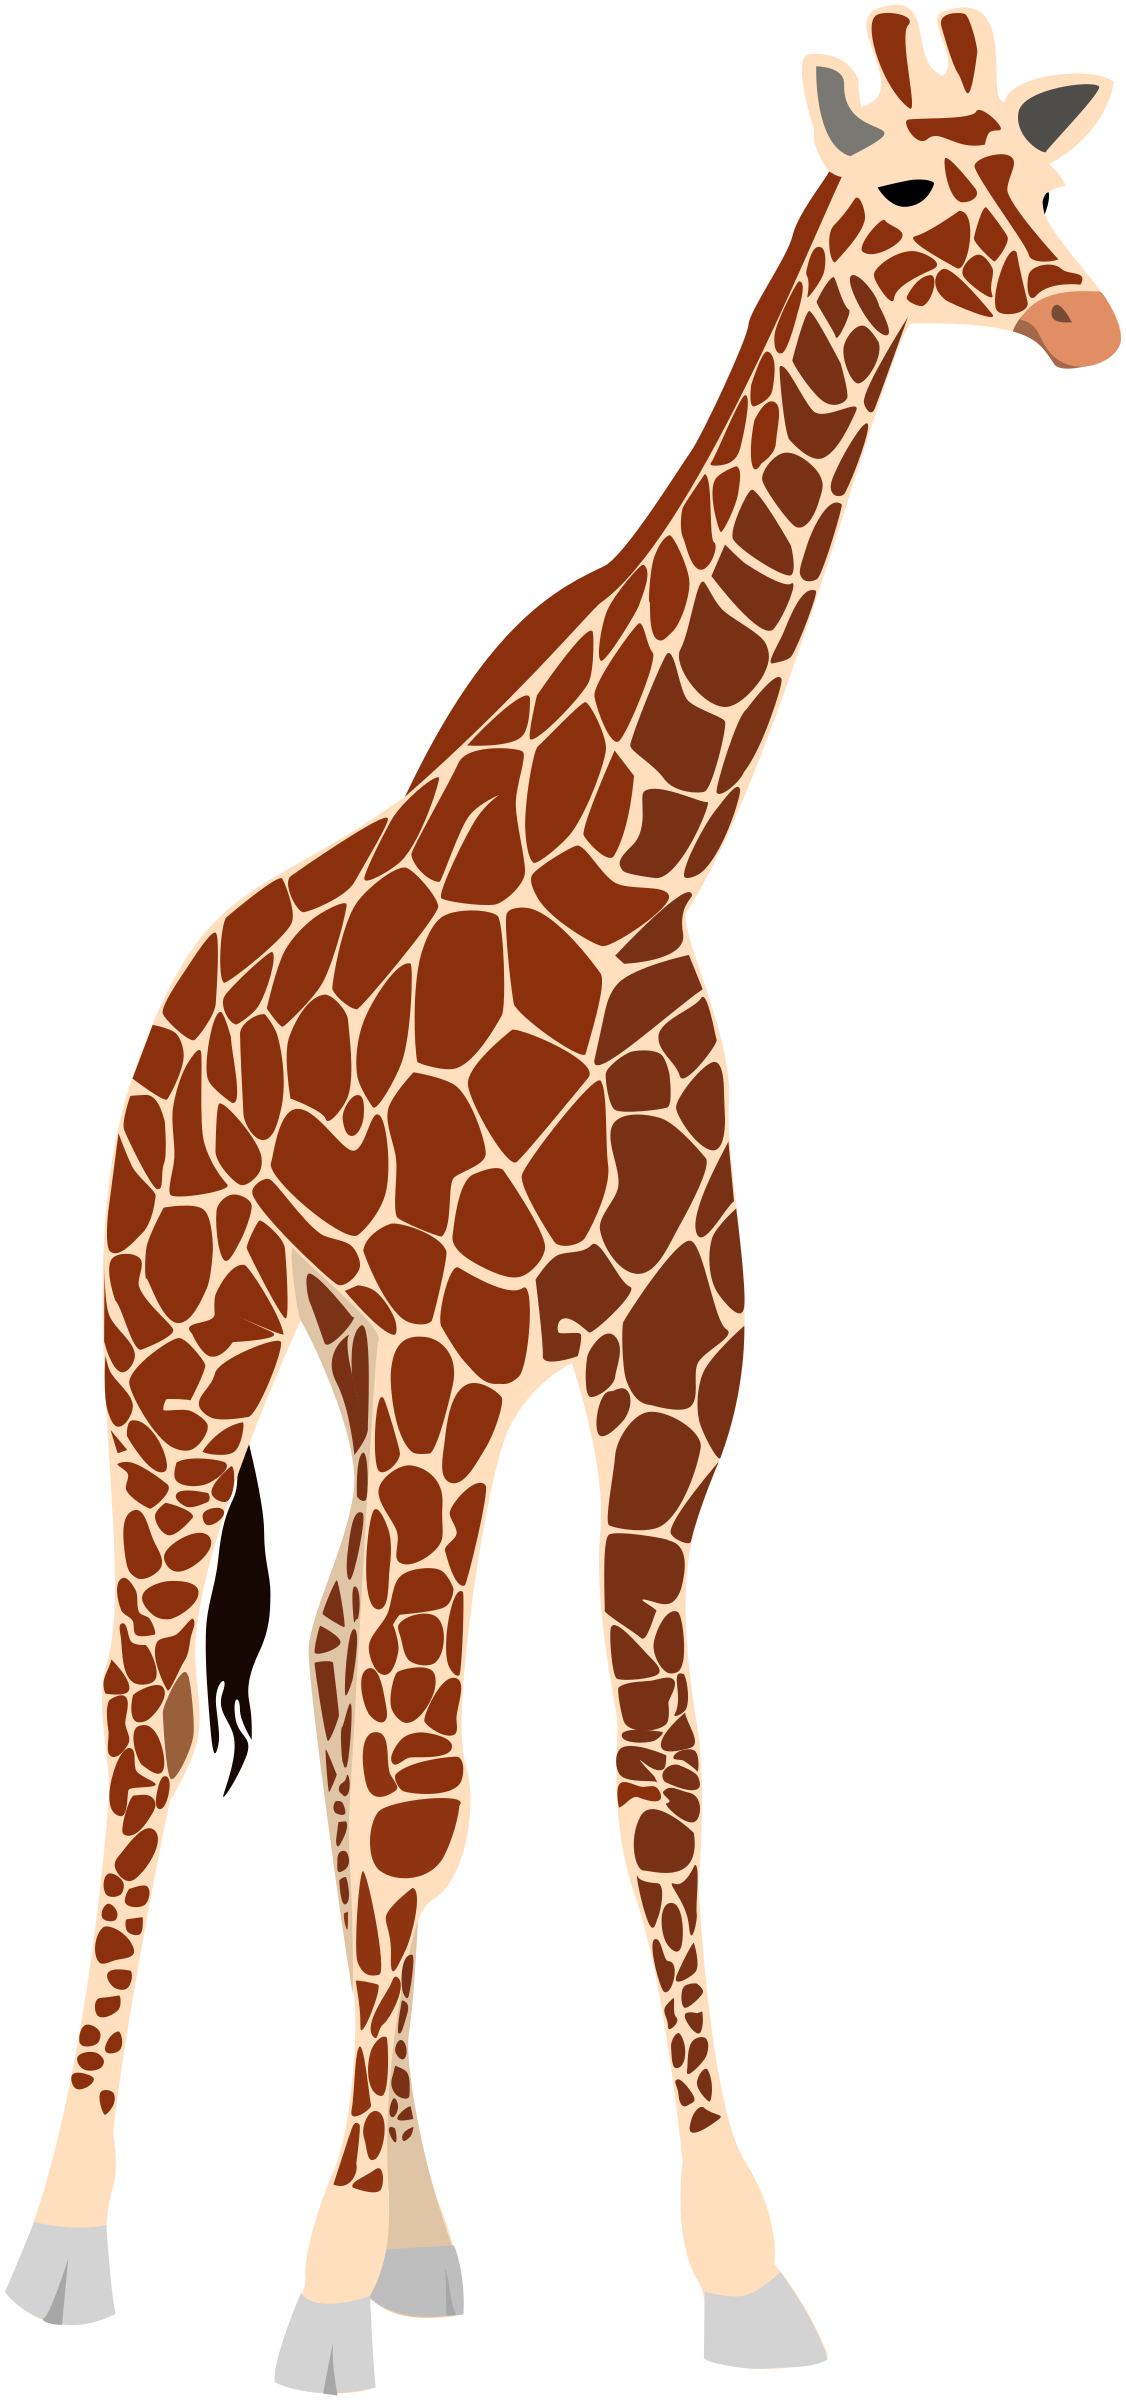 transparent Another big image png. Giraffe clipart